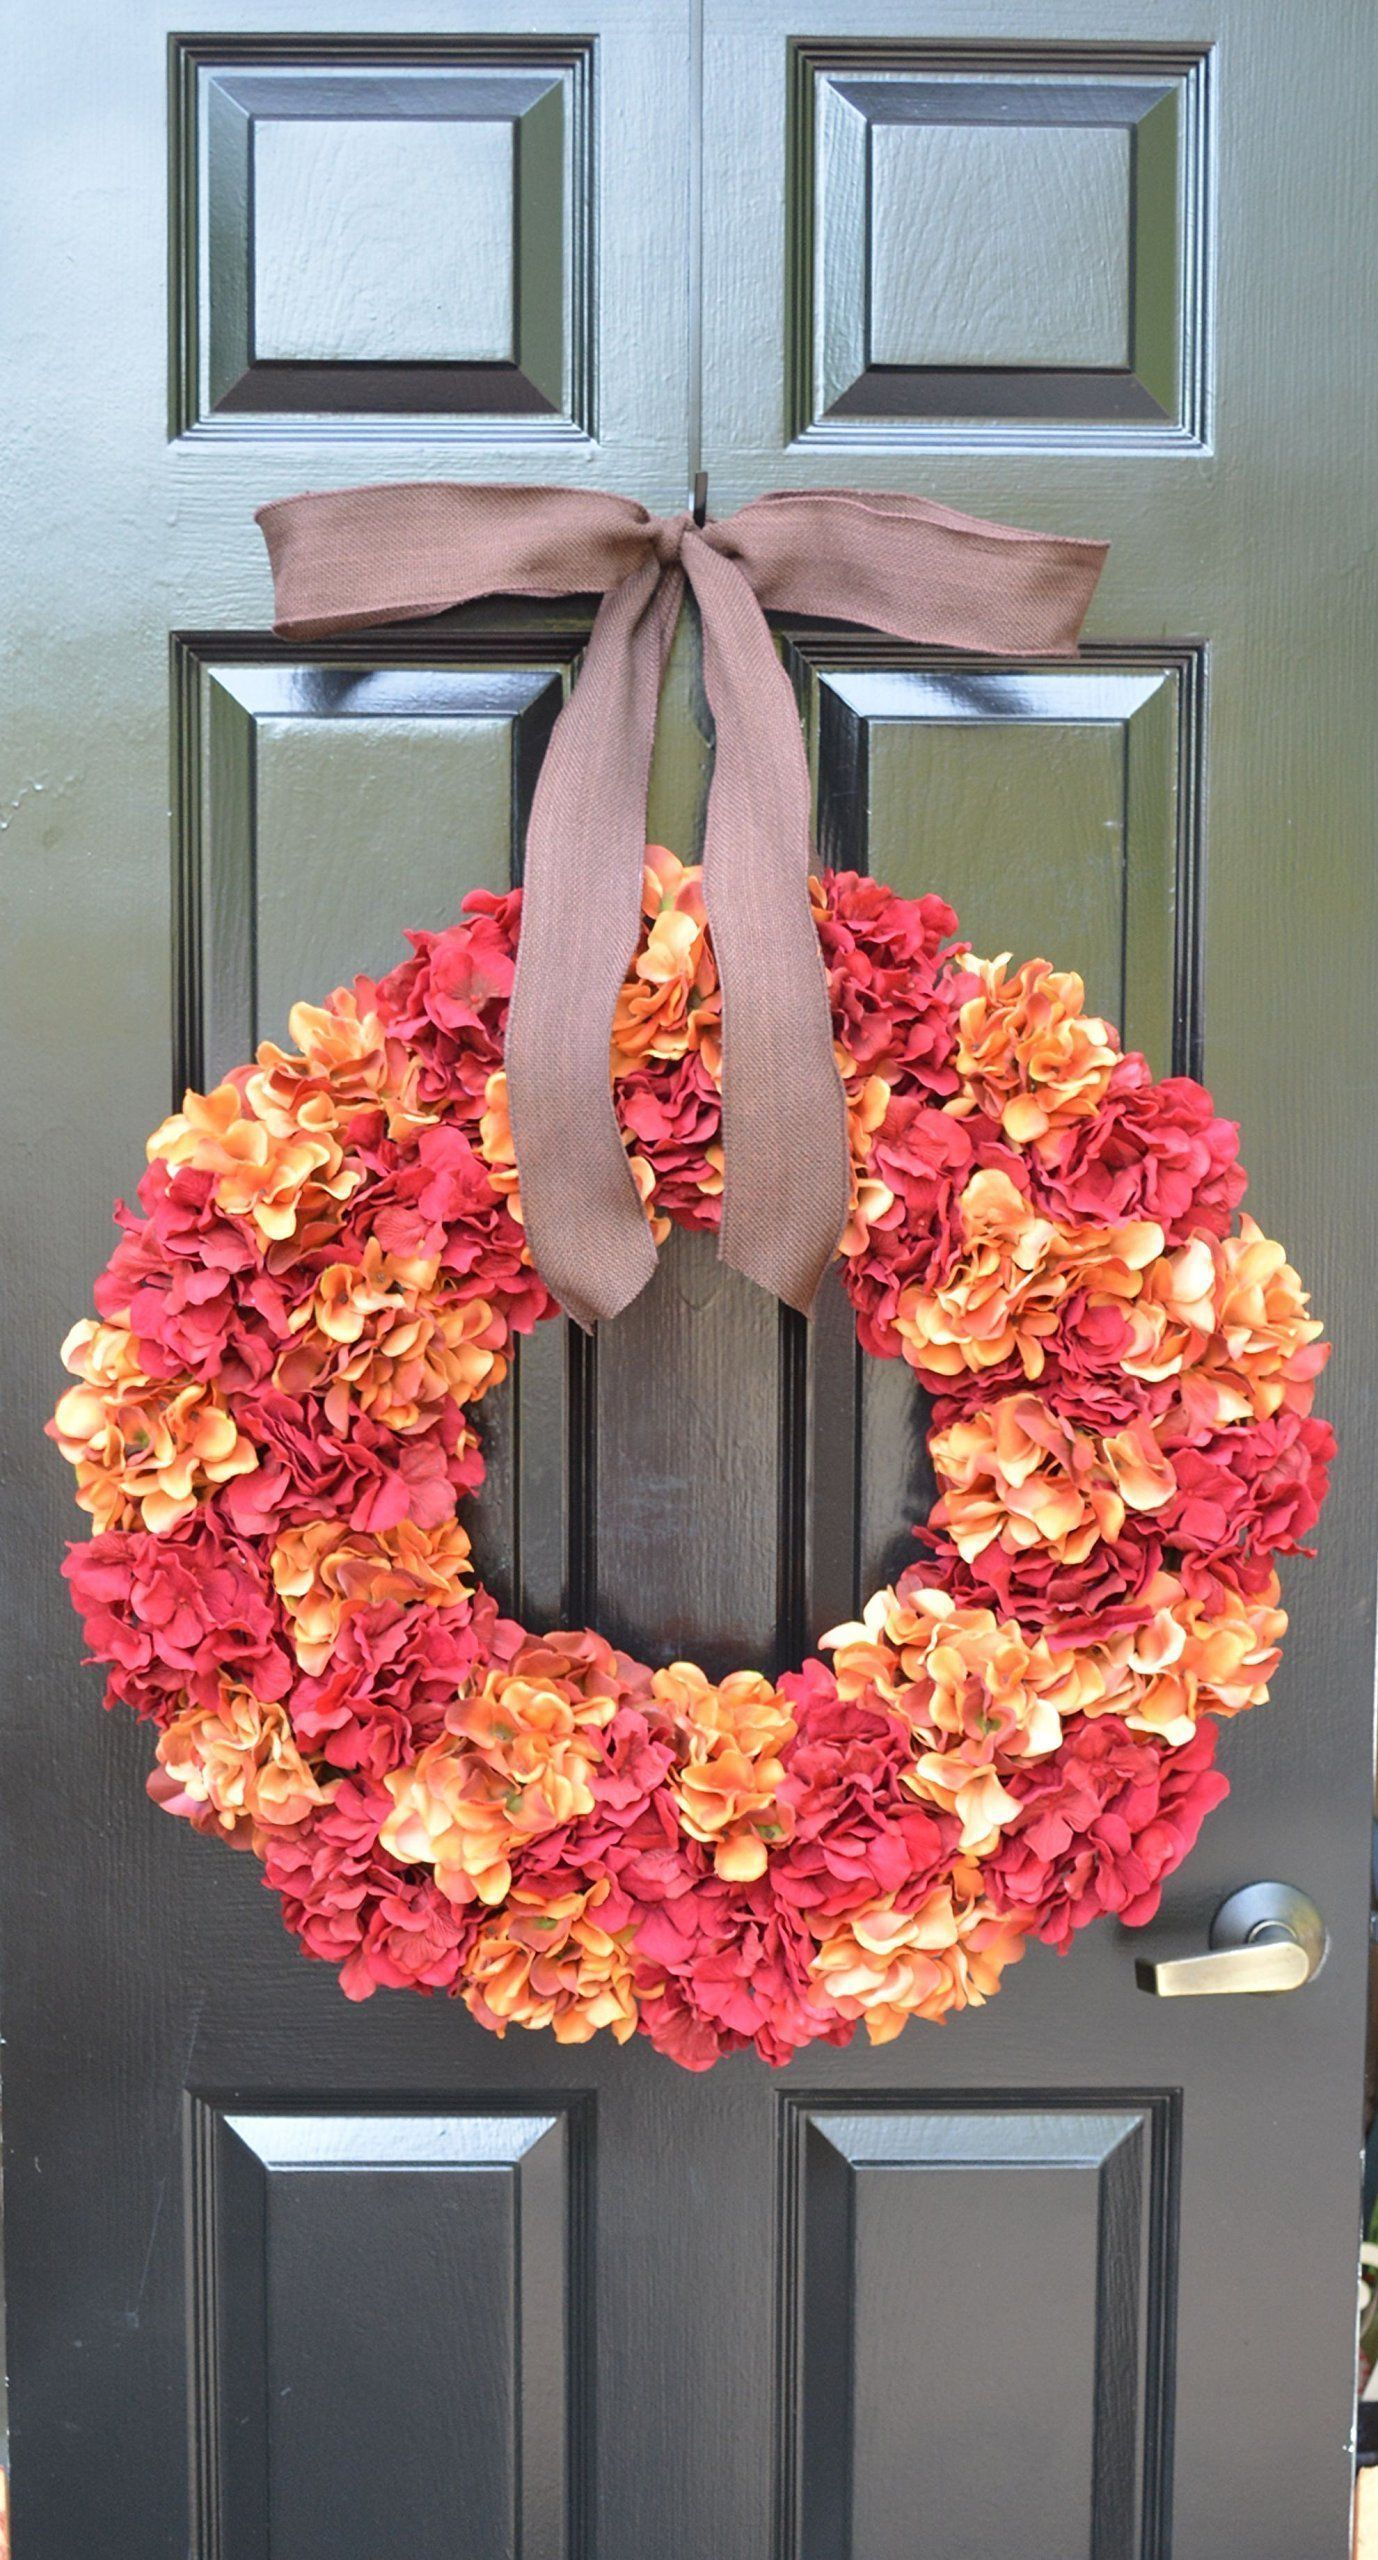 Elegant Holidays Handmade Silk Hydrangea Wreath with Bow (Choice of 2 Colors: Orange, Red or Green), Great for All Seasons and Holidays- Autumn, Summer, Spring, Winter. Home Wall Accent Décor. All wreaths are made to order by hand. We have been featured in Better Homes and Gardens Magazine, TV's Extreme Makeover: Home Edition, Southern Living Magazine Home Builders, Nails Magazine, and many other blogs and websites. Discover quality, stylish, gorgeous hand-made accent wreaths. Great for...